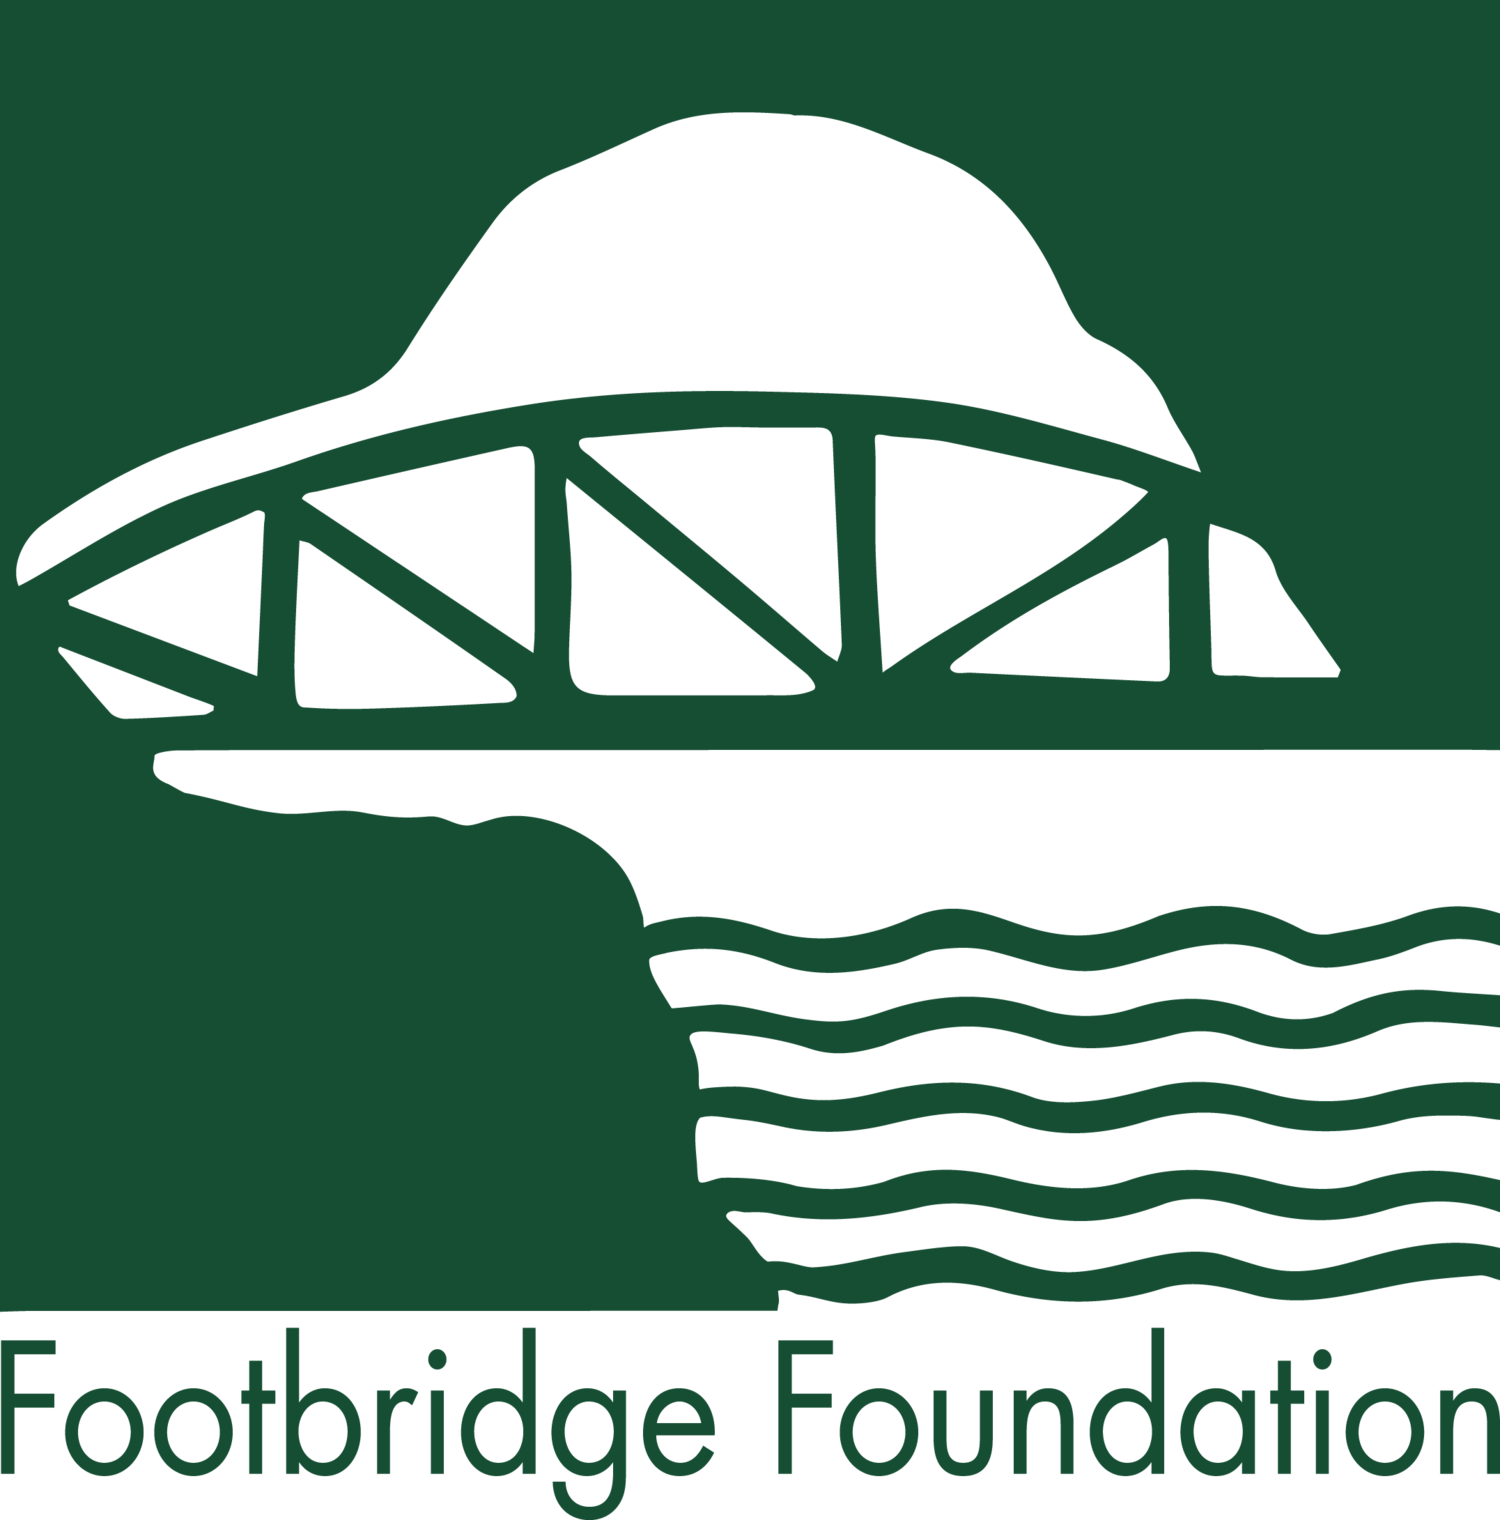 Footbridge Foundation